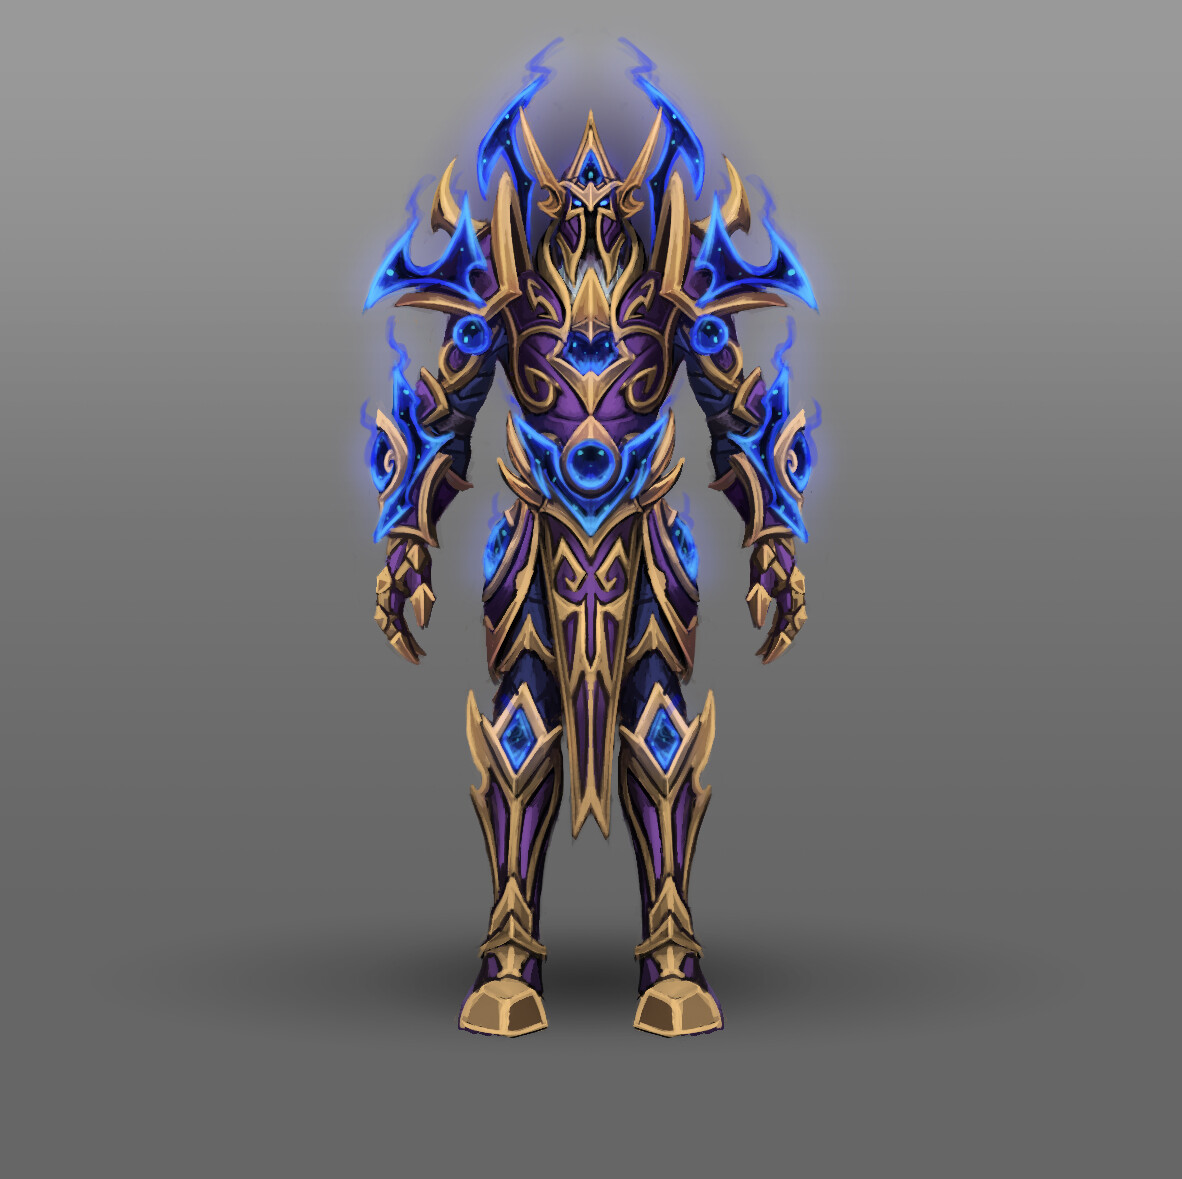 Artstation Fan Art World Of Warcraft Racial Class Armor Design Voidelf Arthur Lorenz Now i know heritage armors have gone a bit back and forth, but i like to think that the perfect heritage armor is inspired by elite and venerated warriors in that culture. of warcraft racial class armor design